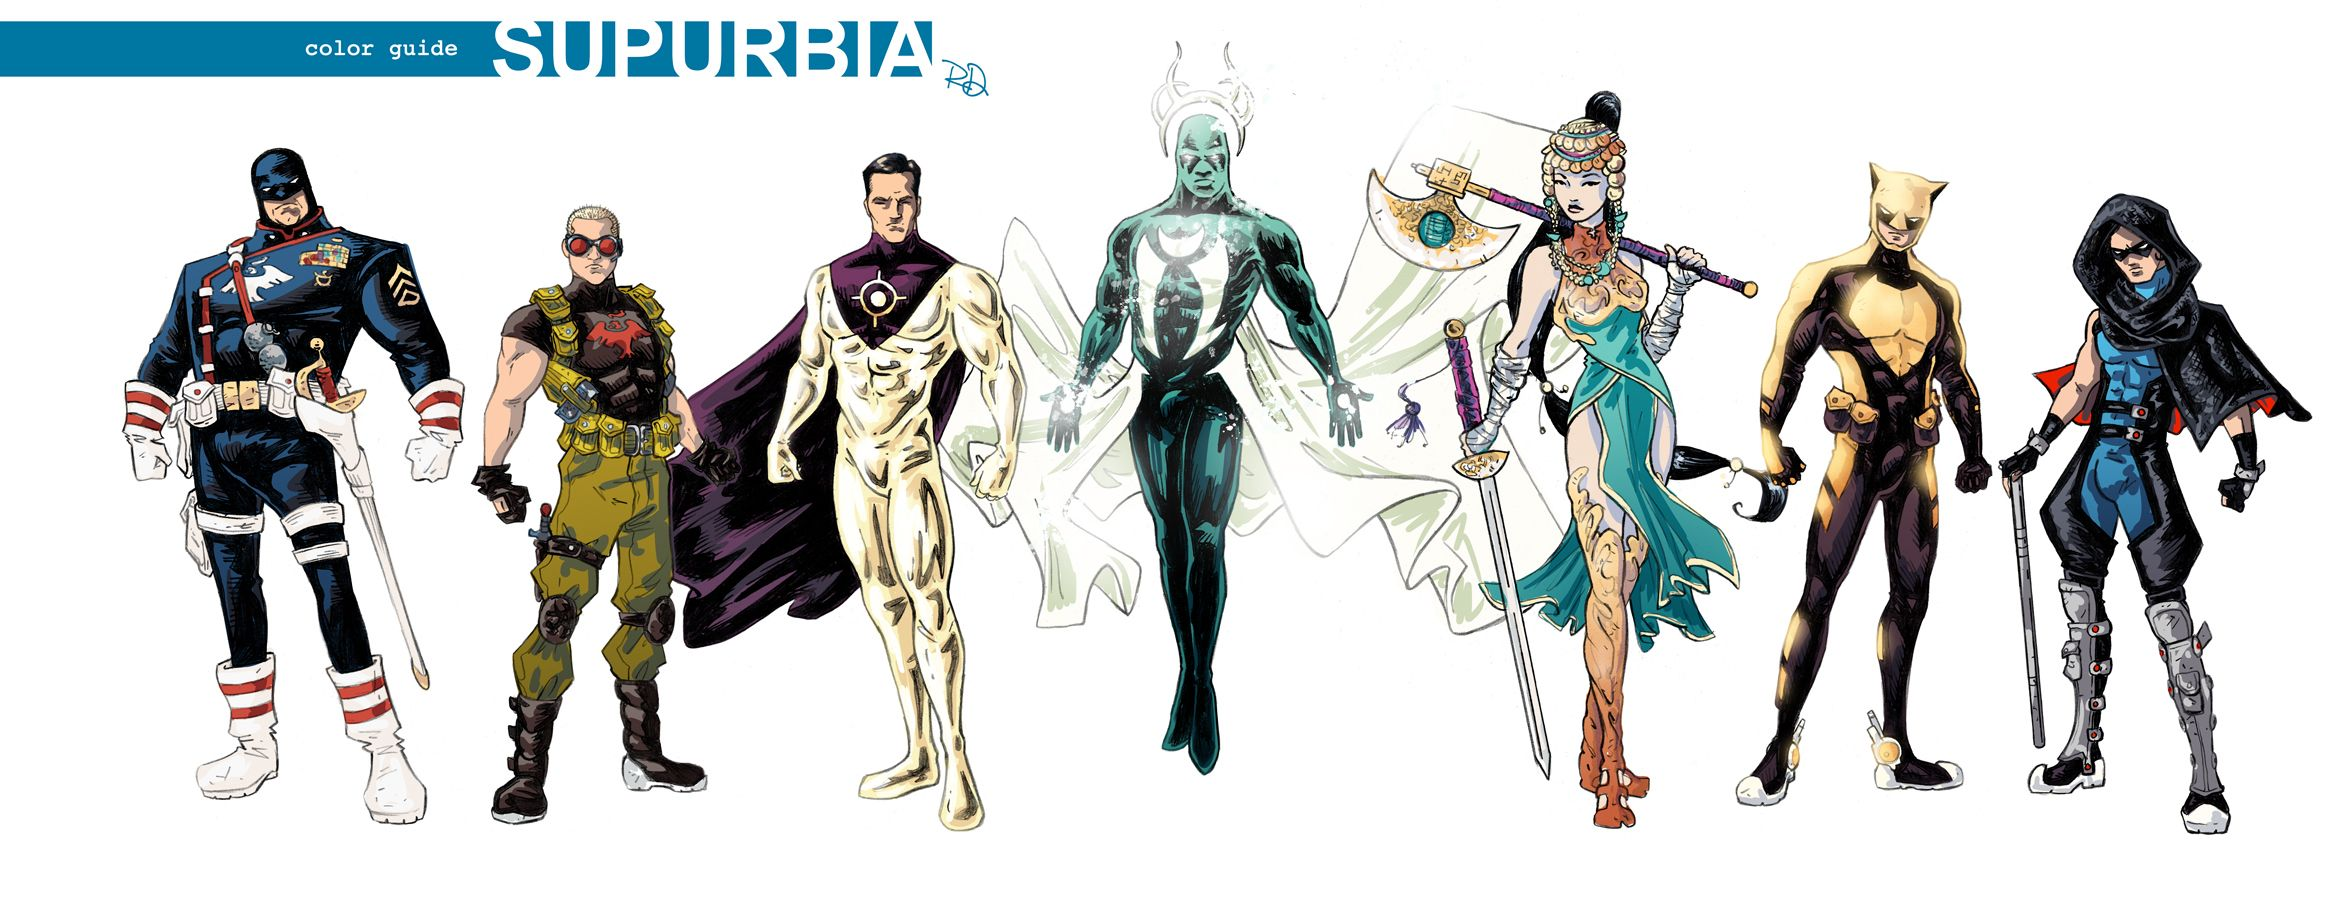 Book Character Design Tips : Supurbia character designs superhero color guide v g